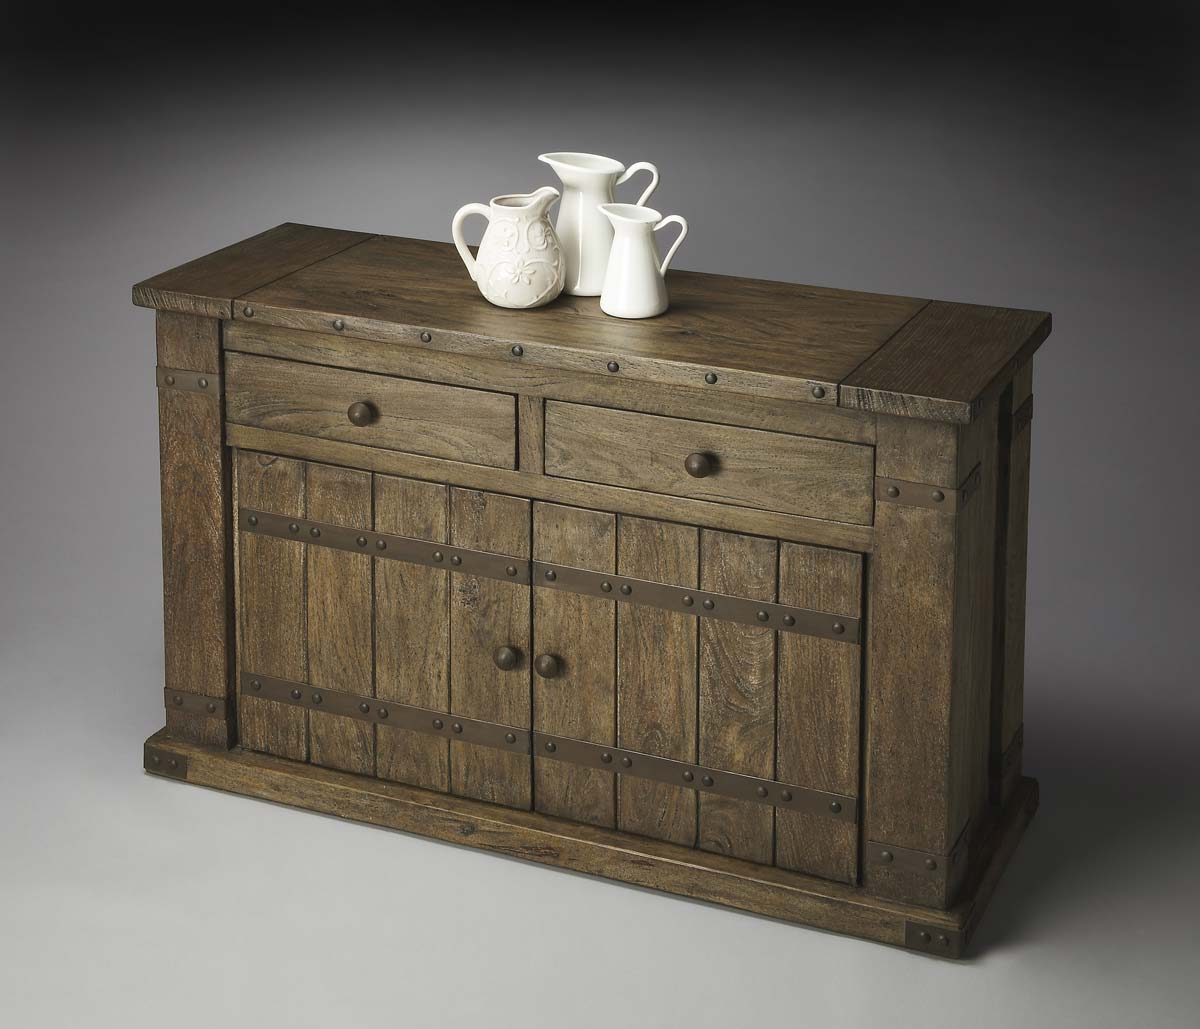 Superb-quality Butler Console Cabinet Mountain Lodge Product Photo